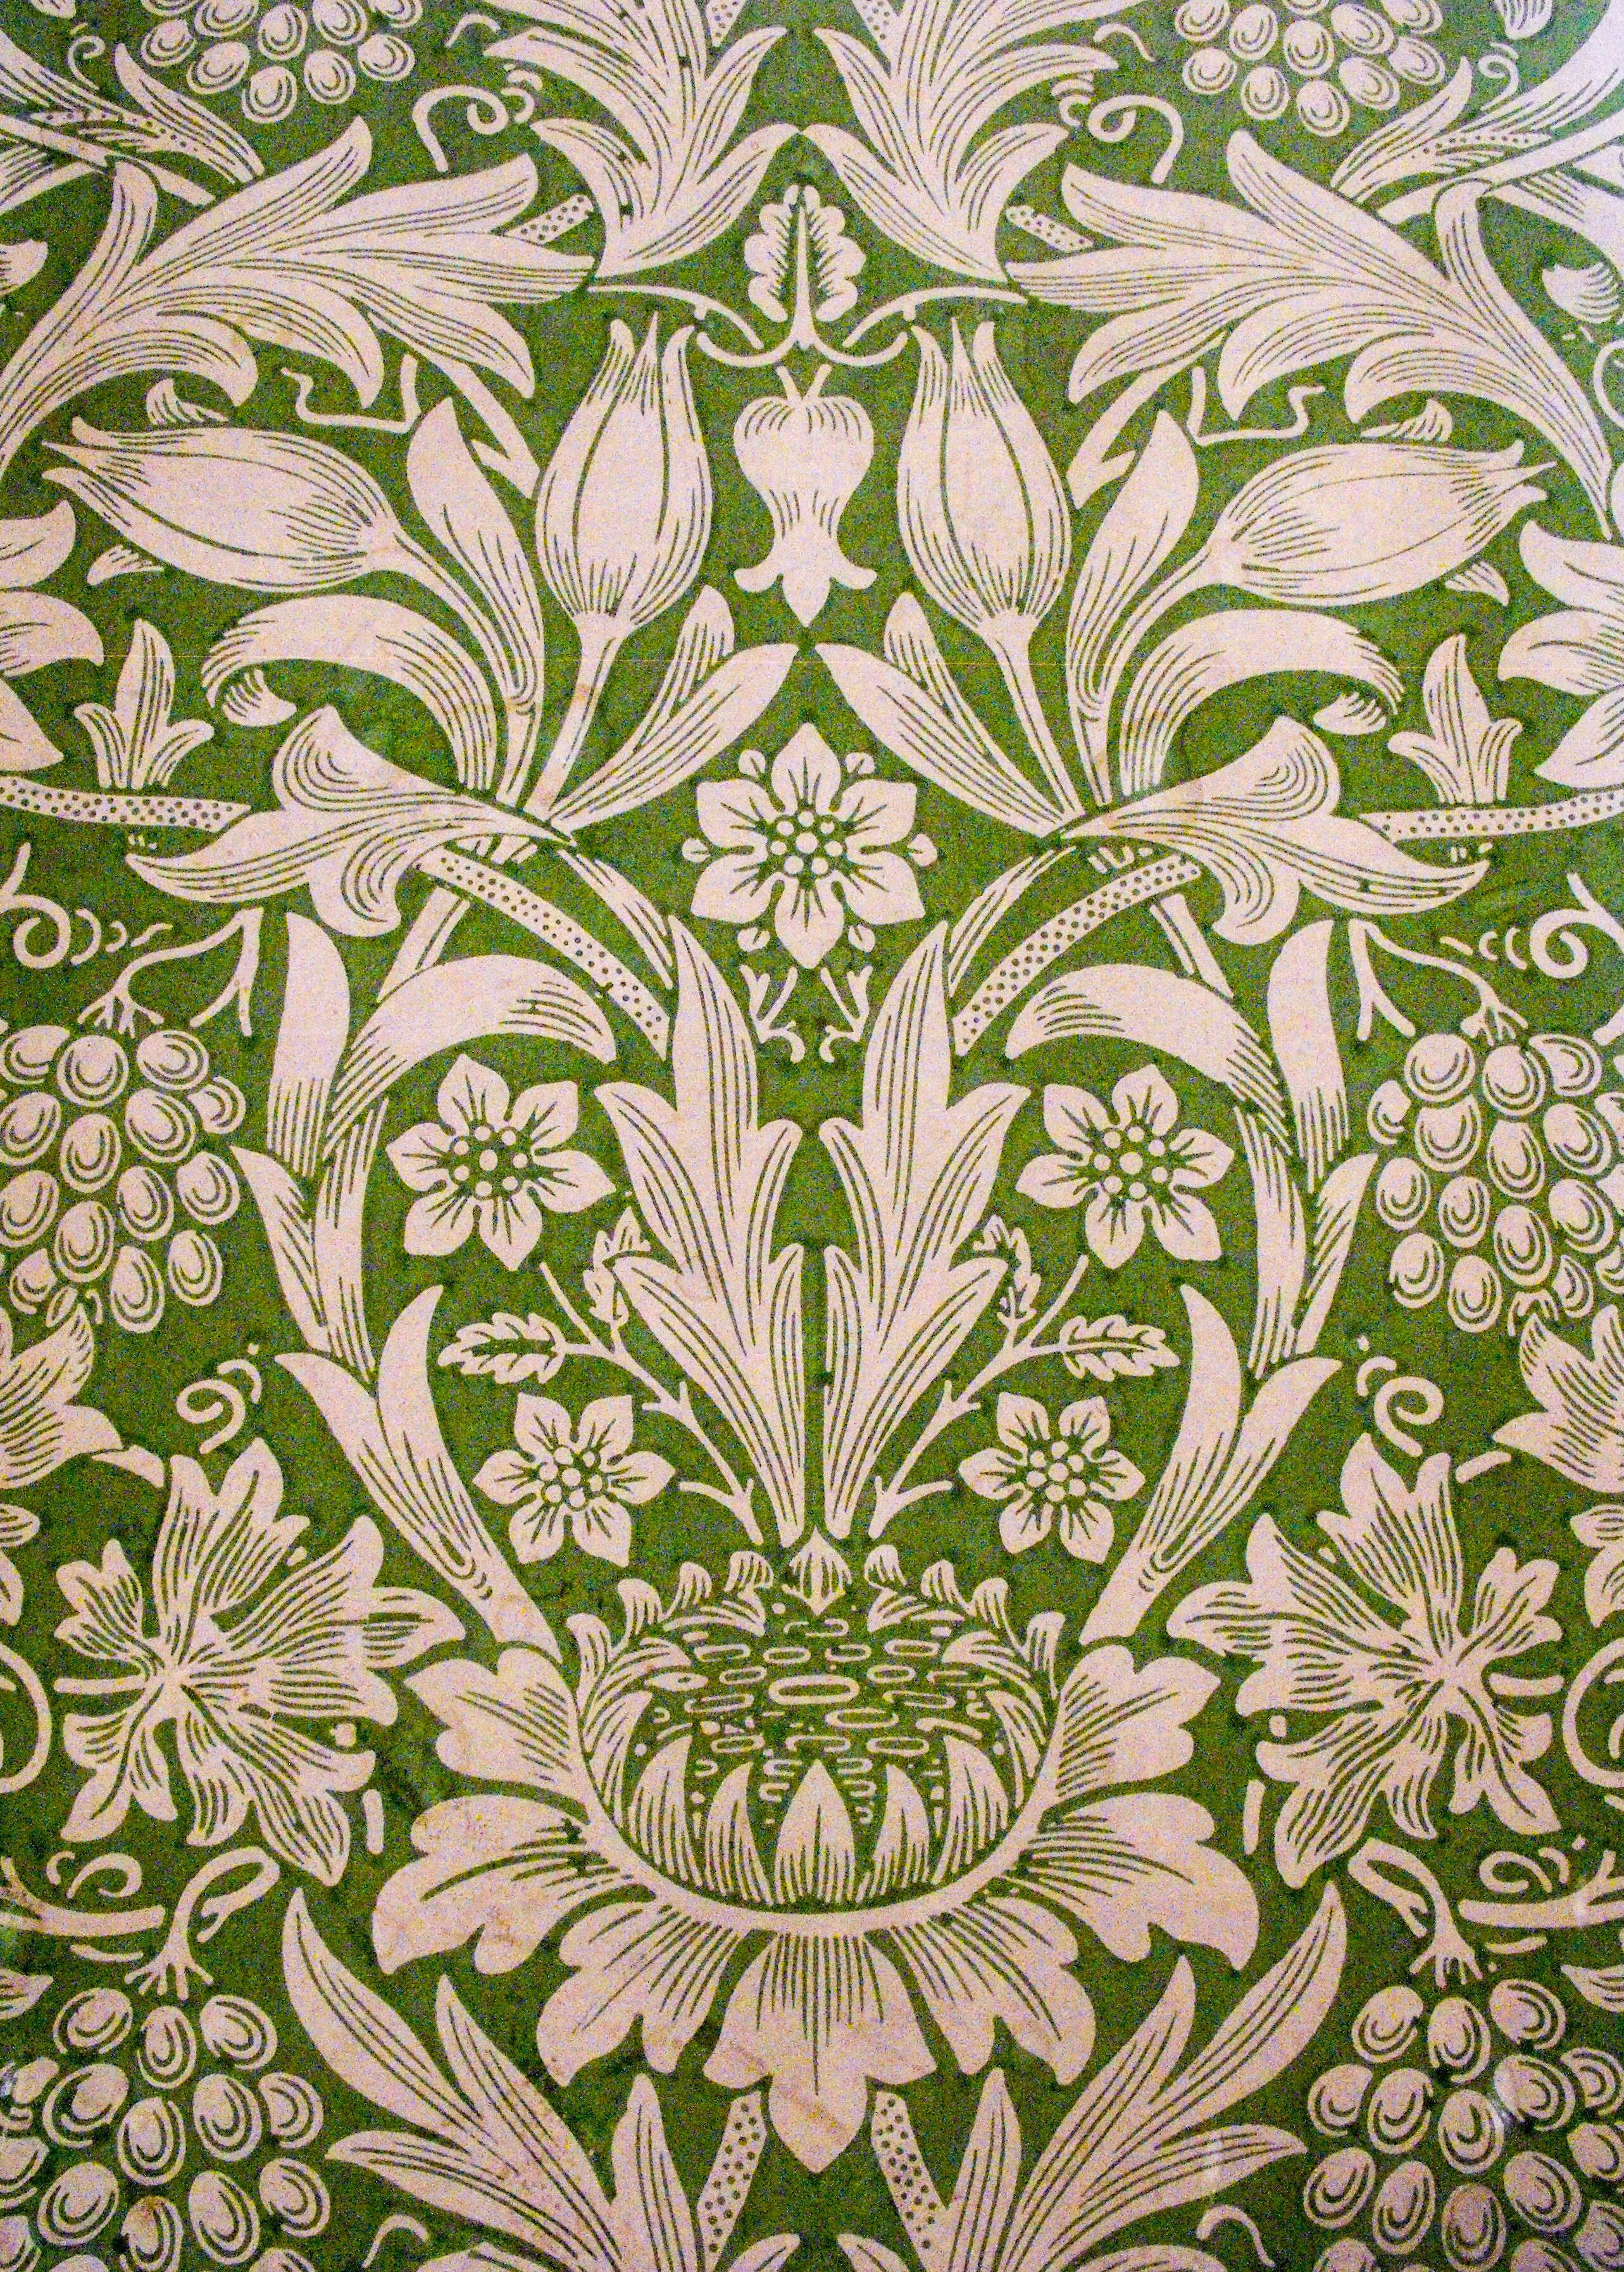 William Morris Arts And Crafts Movement William Morris Art William Morris Wallpaper William Morris Patterns